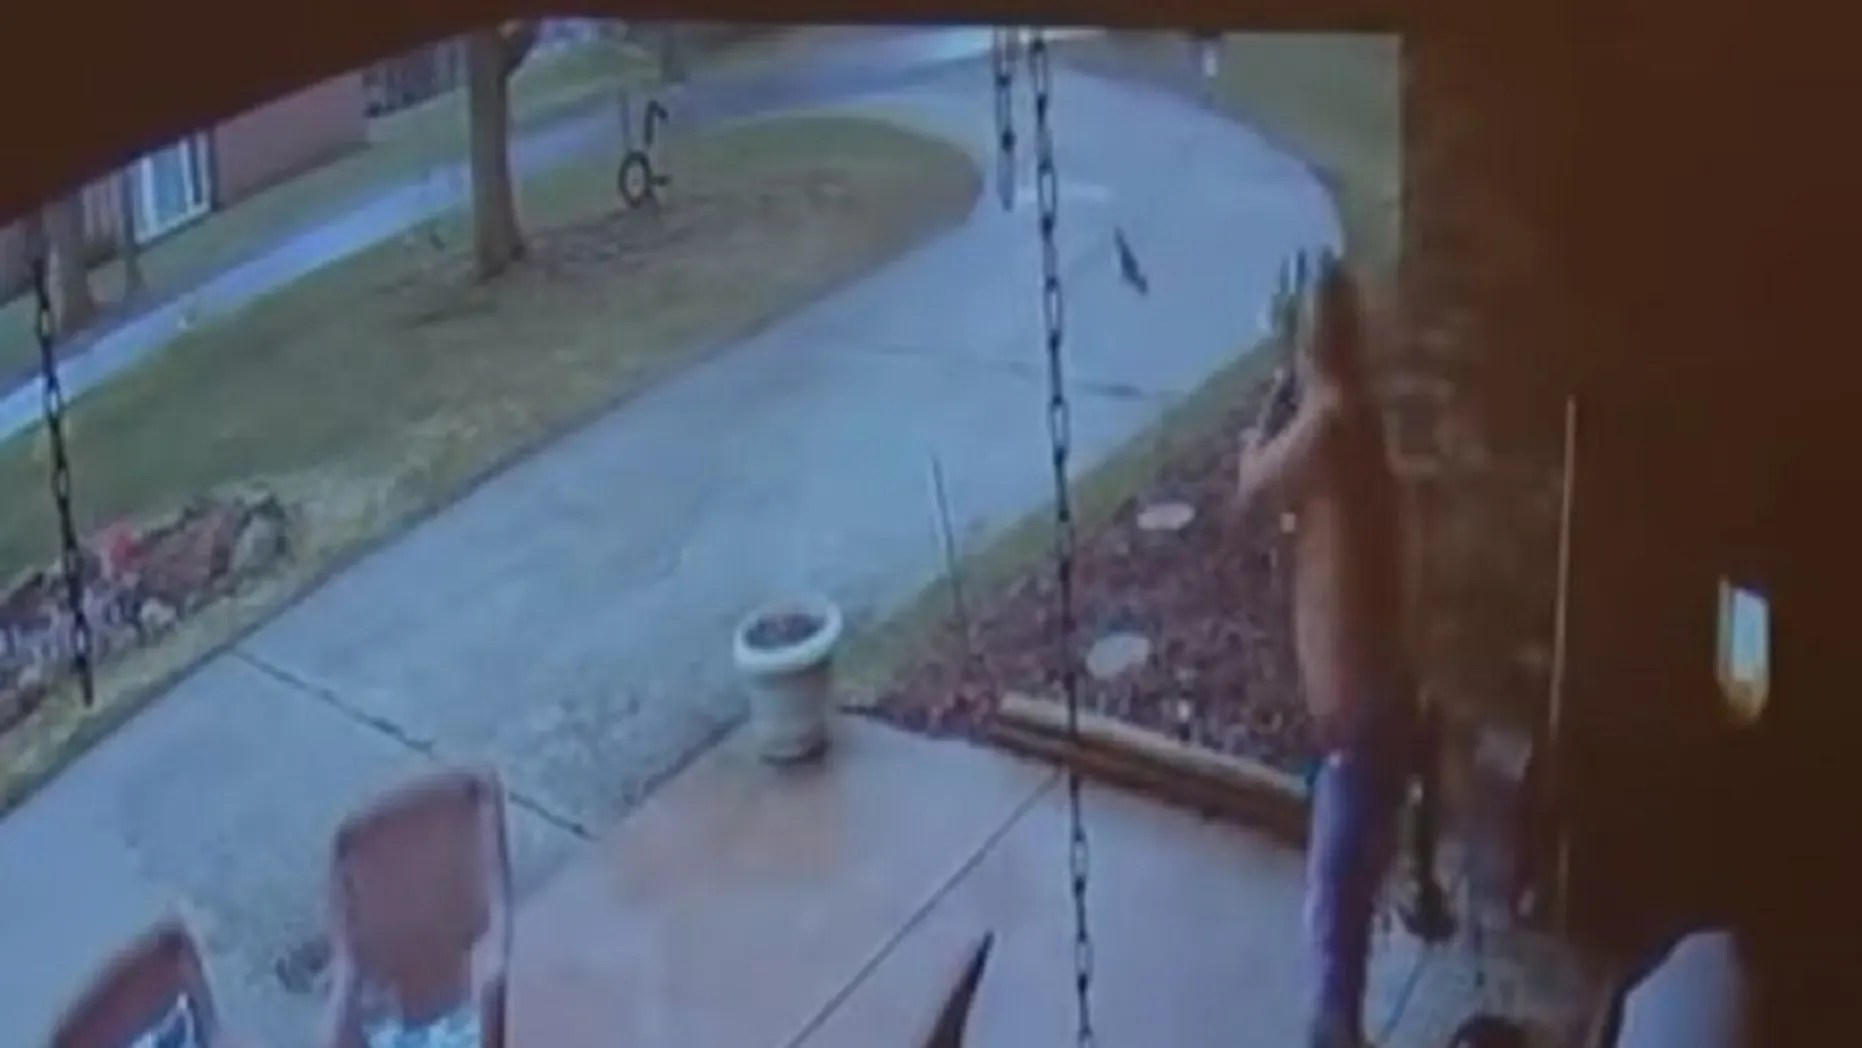 Security footage captured a Michigan man shooting at a teenager.